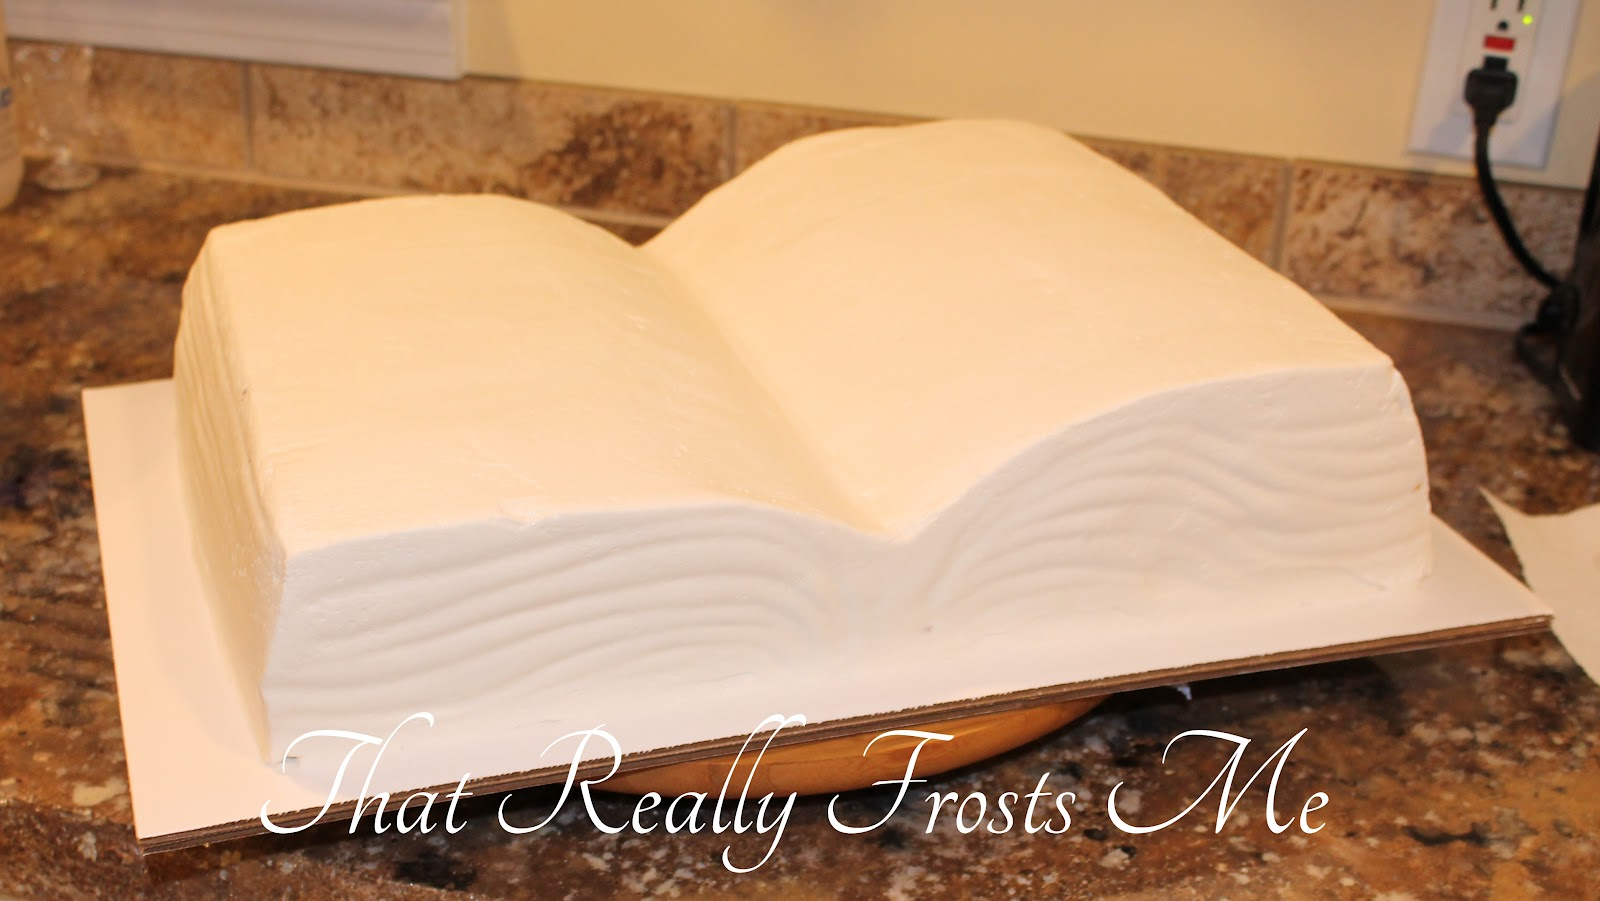 That really frosts me sunday school bible cake for Decorated bible